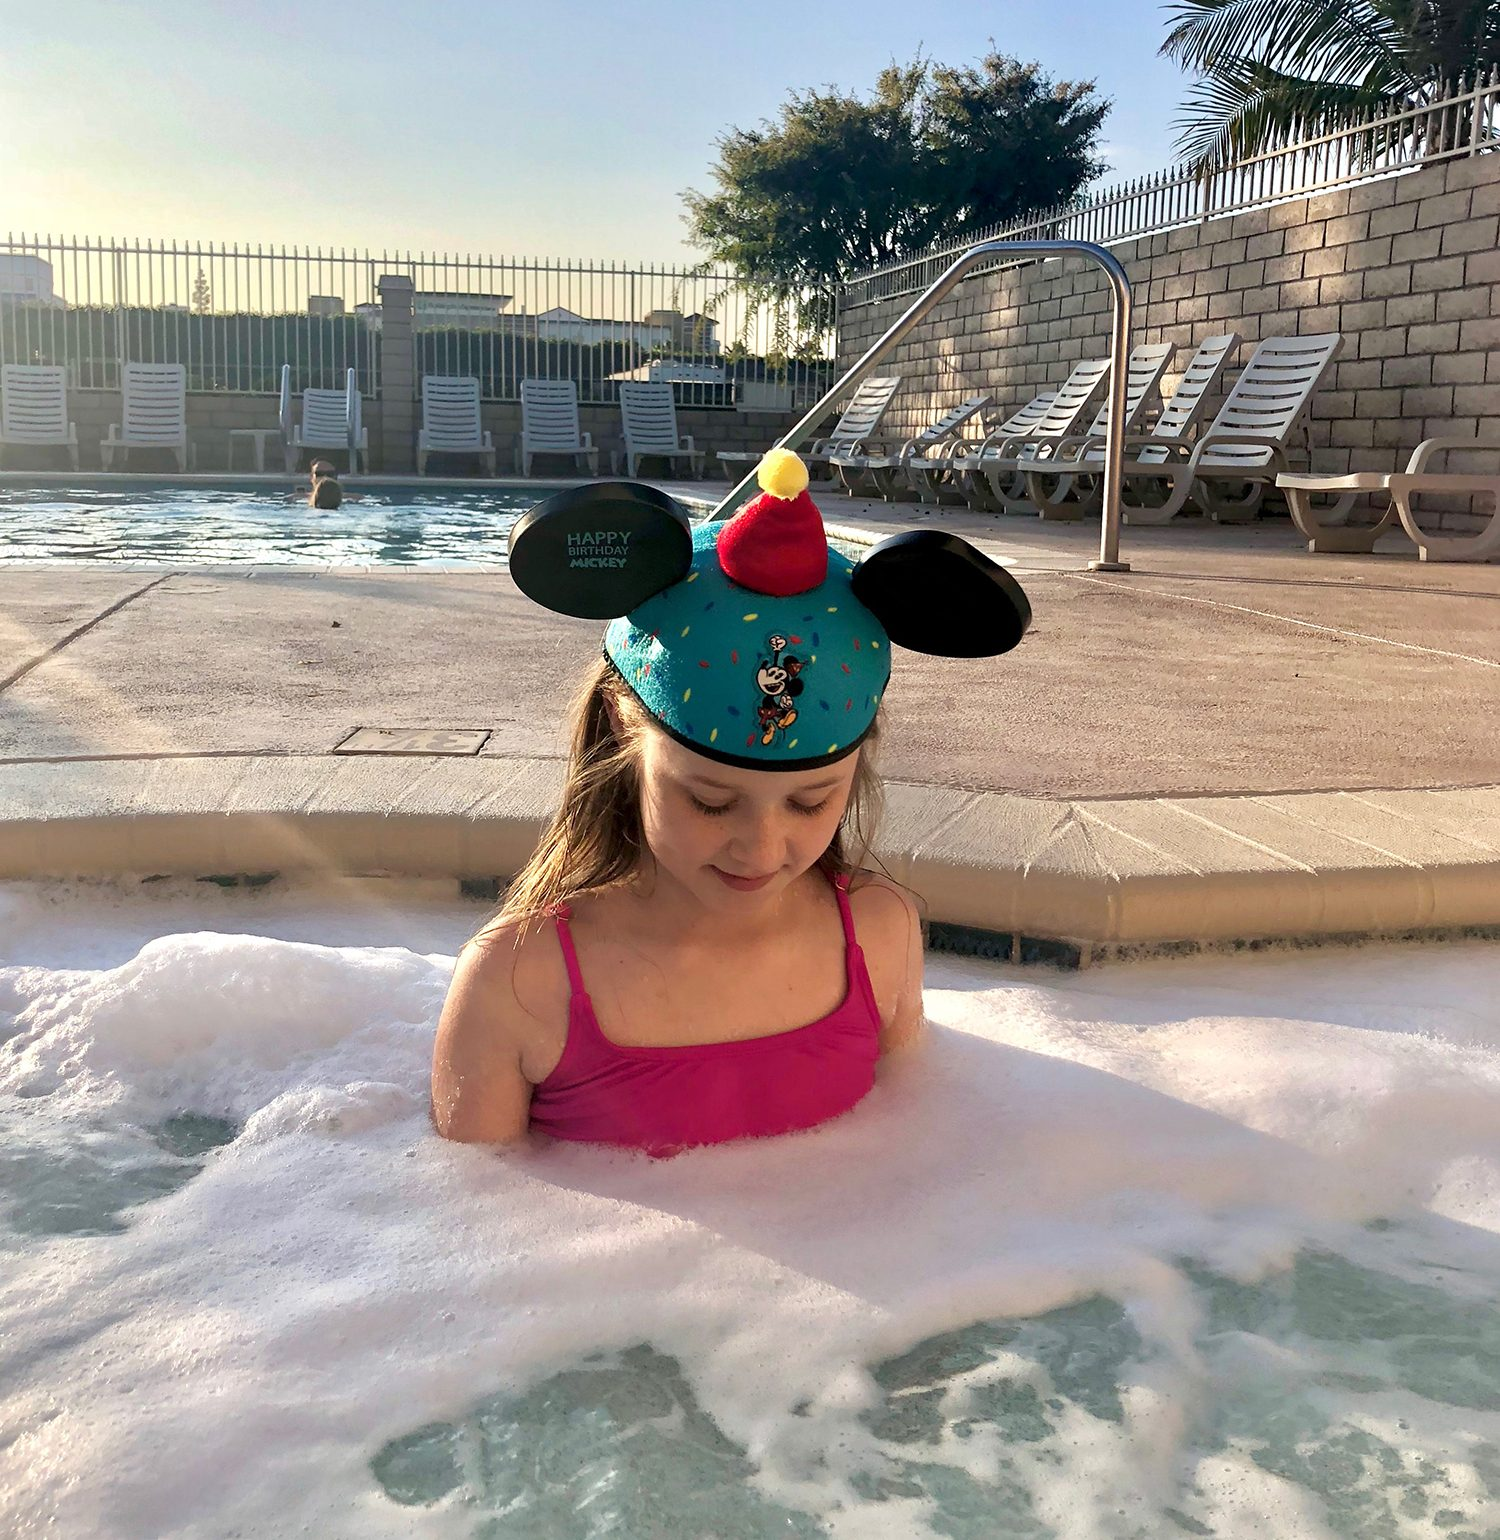 Kid in a hot tub with Disney hat.